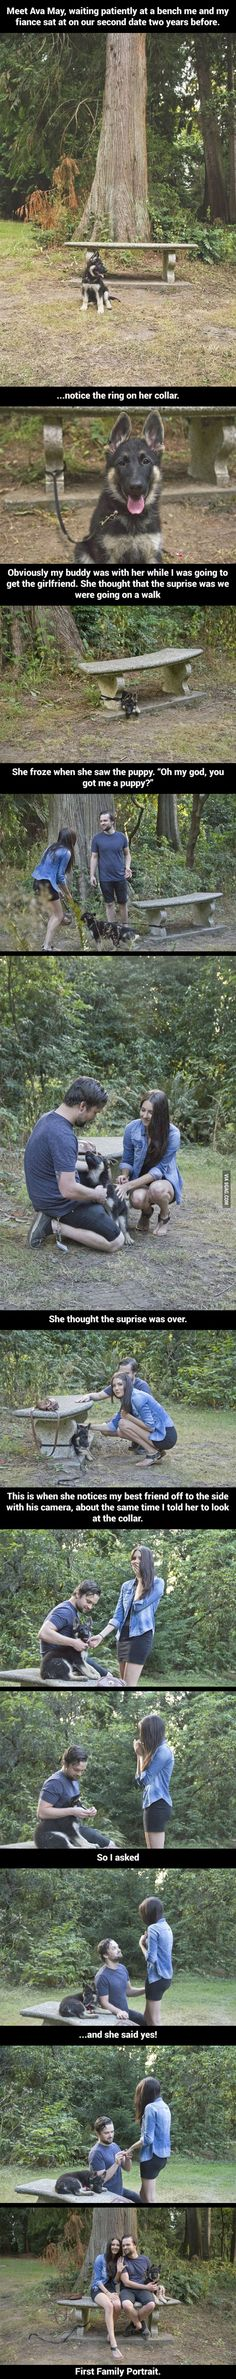 Best proposal ever.